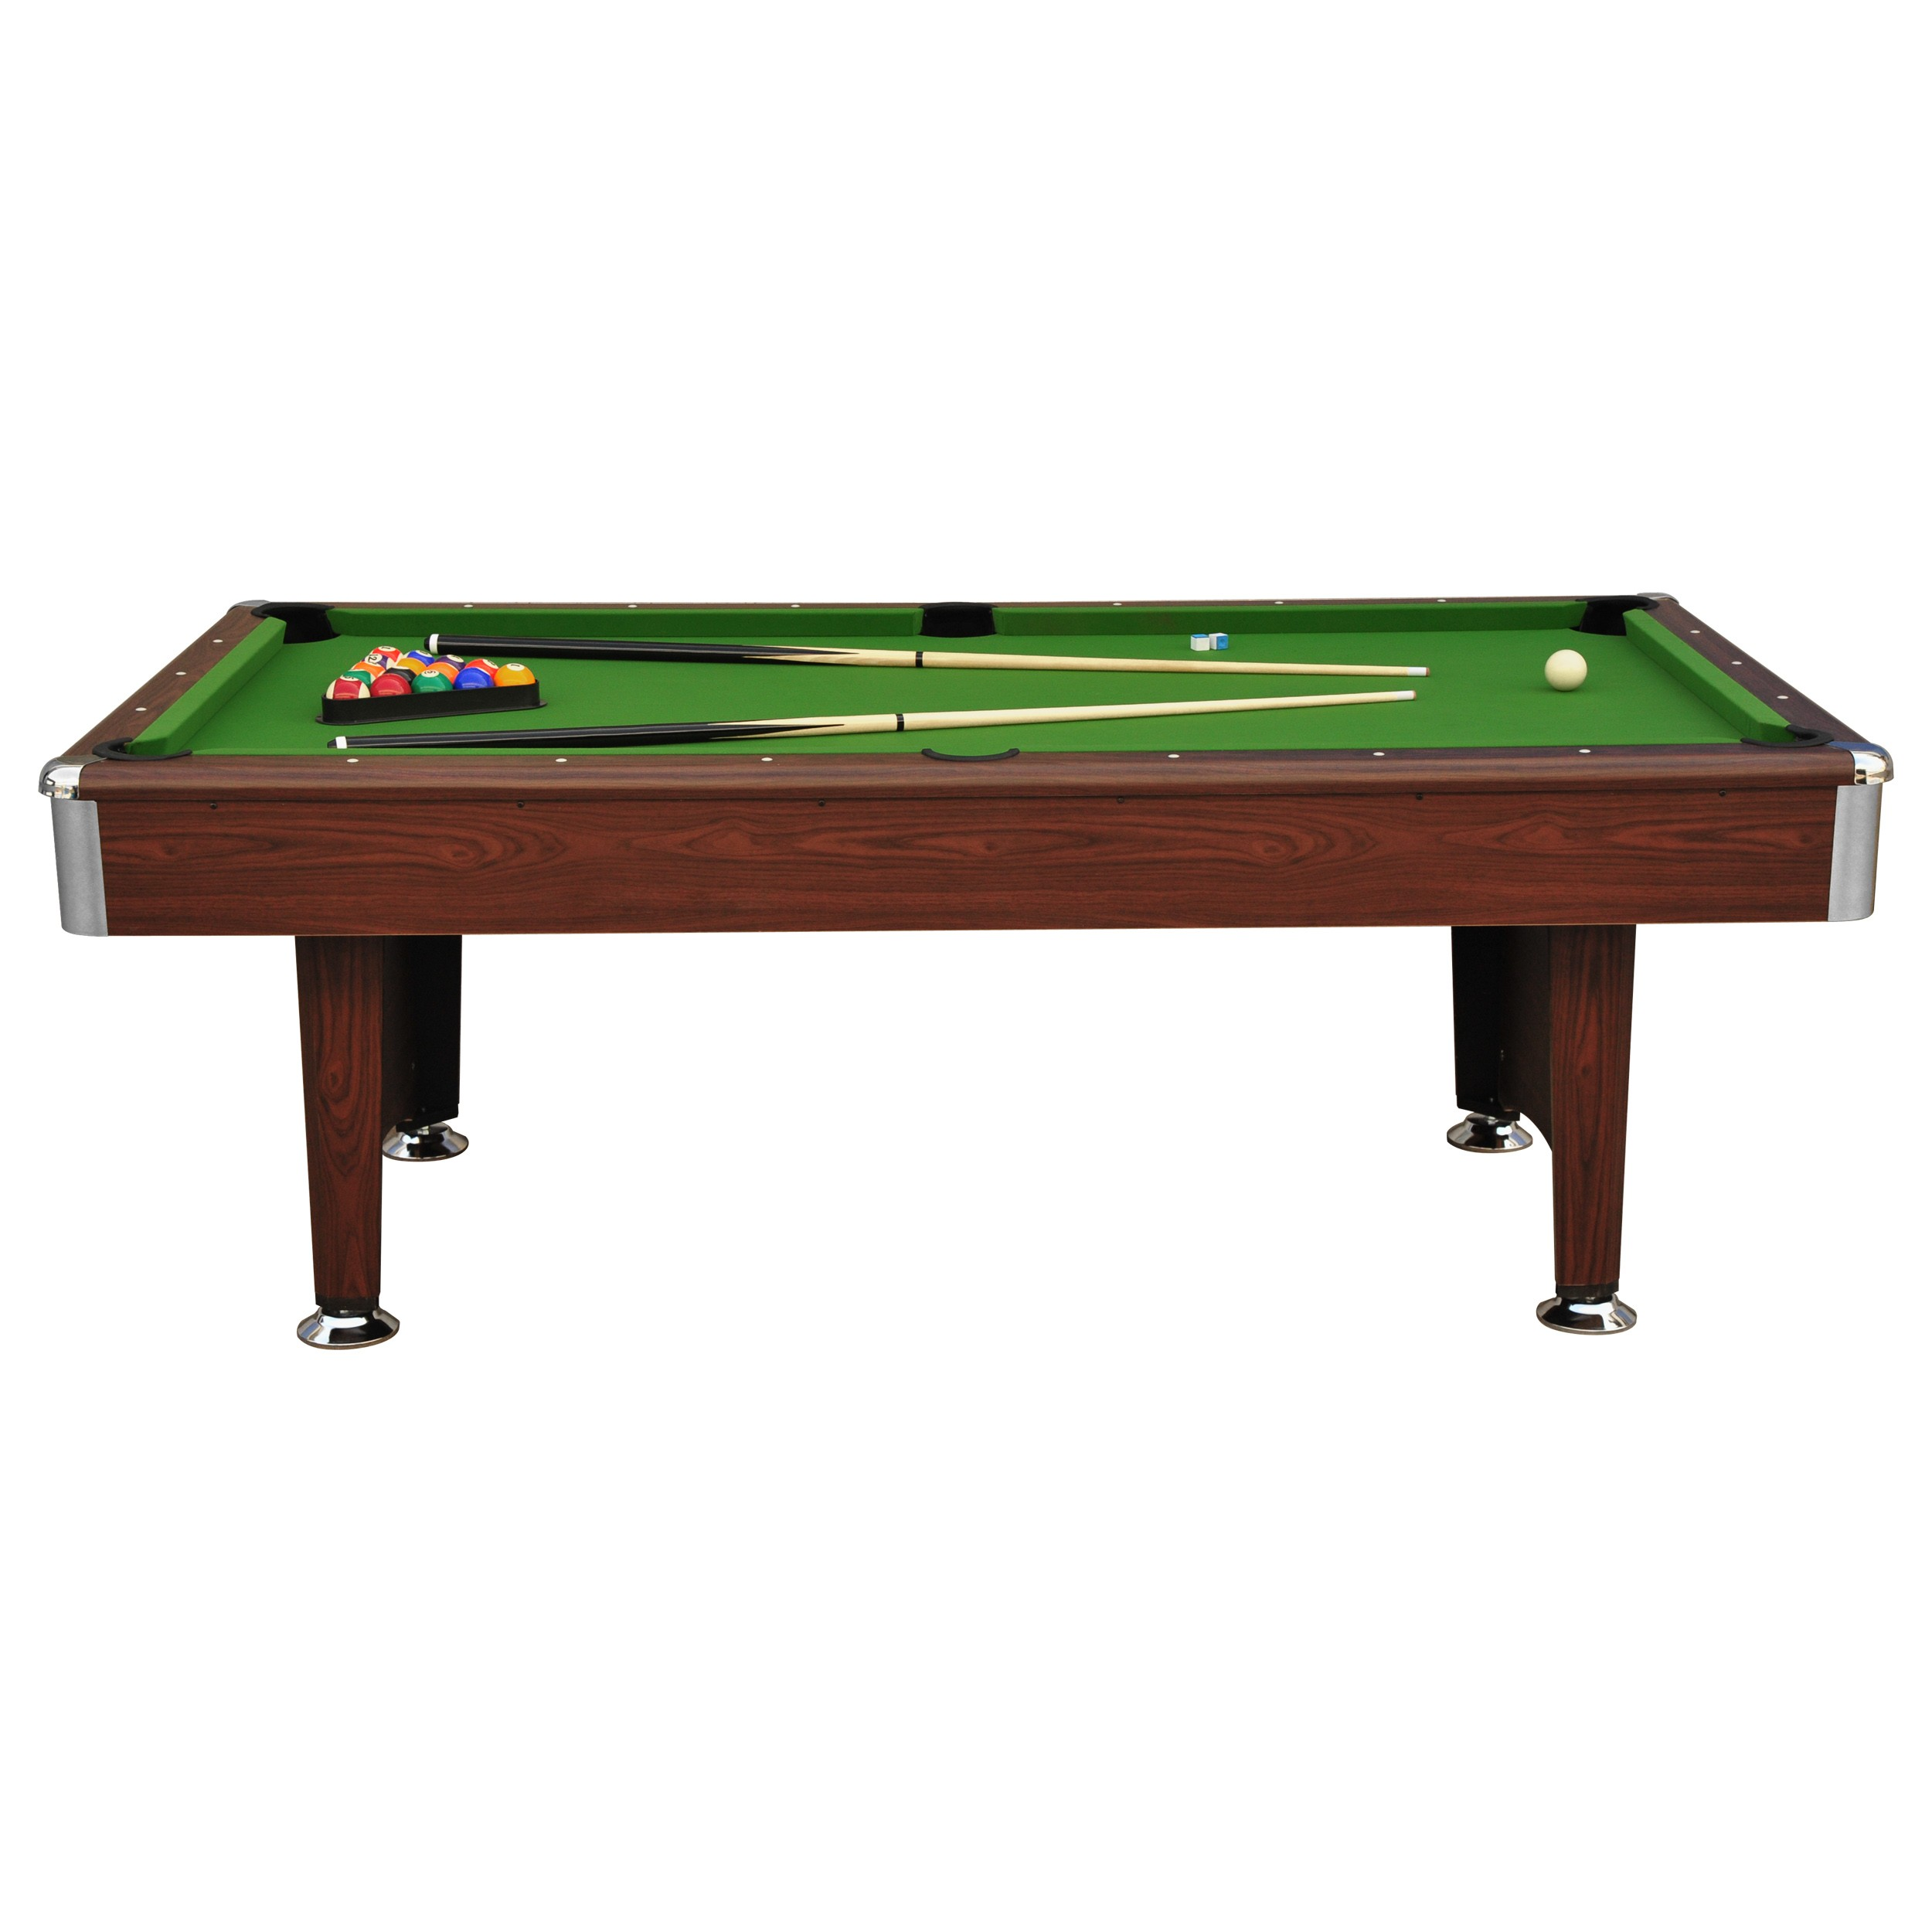 billard westford 7 2ft bois fonc commandez nos billards westford 7 2ft en bois fonc rdv d co. Black Bedroom Furniture Sets. Home Design Ideas